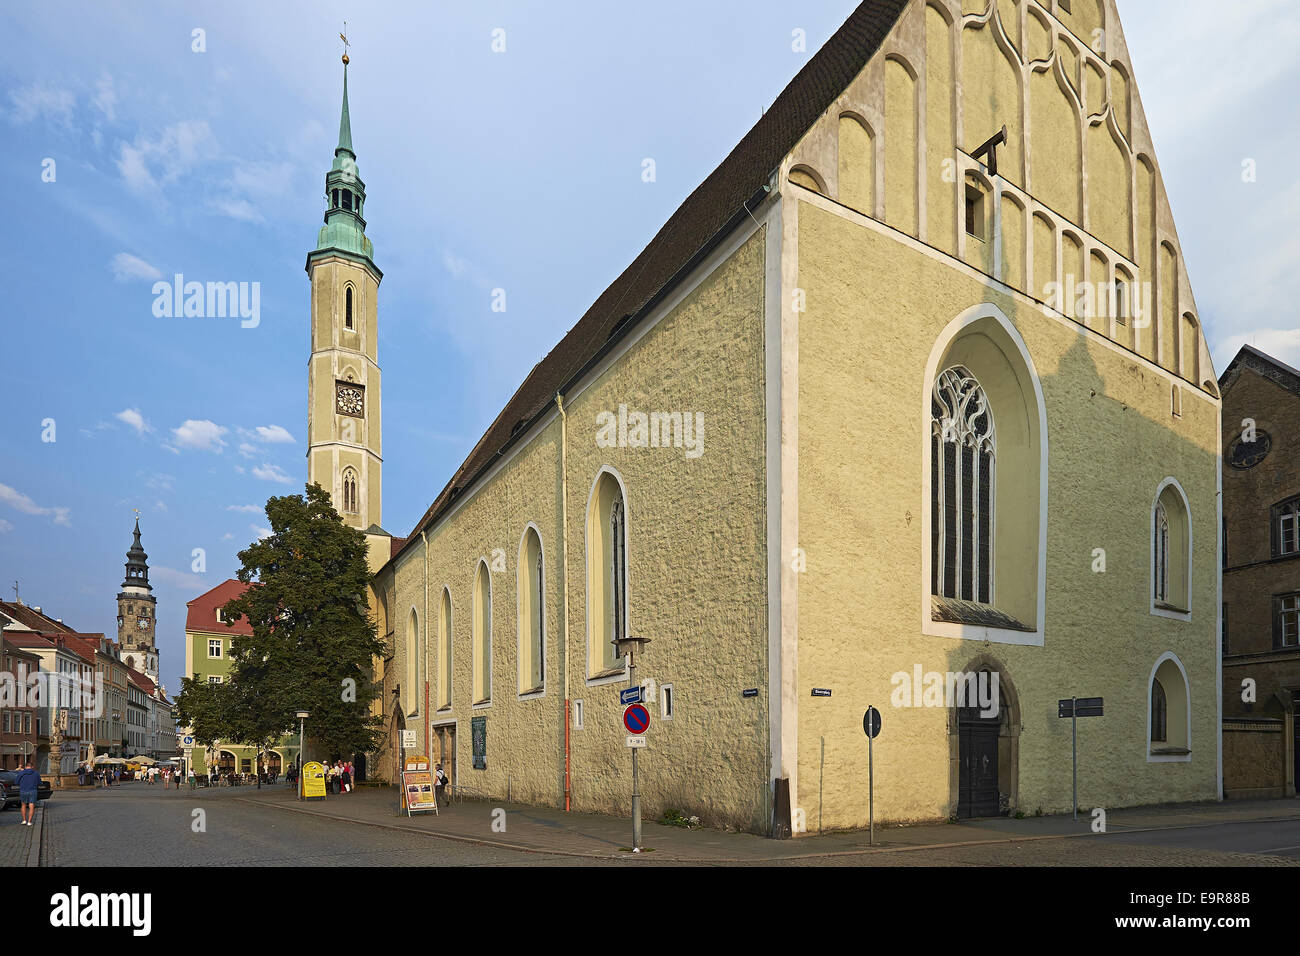 Trinity Church at Obermarkt square Görlitz, Saxony, Germany - Stock Image